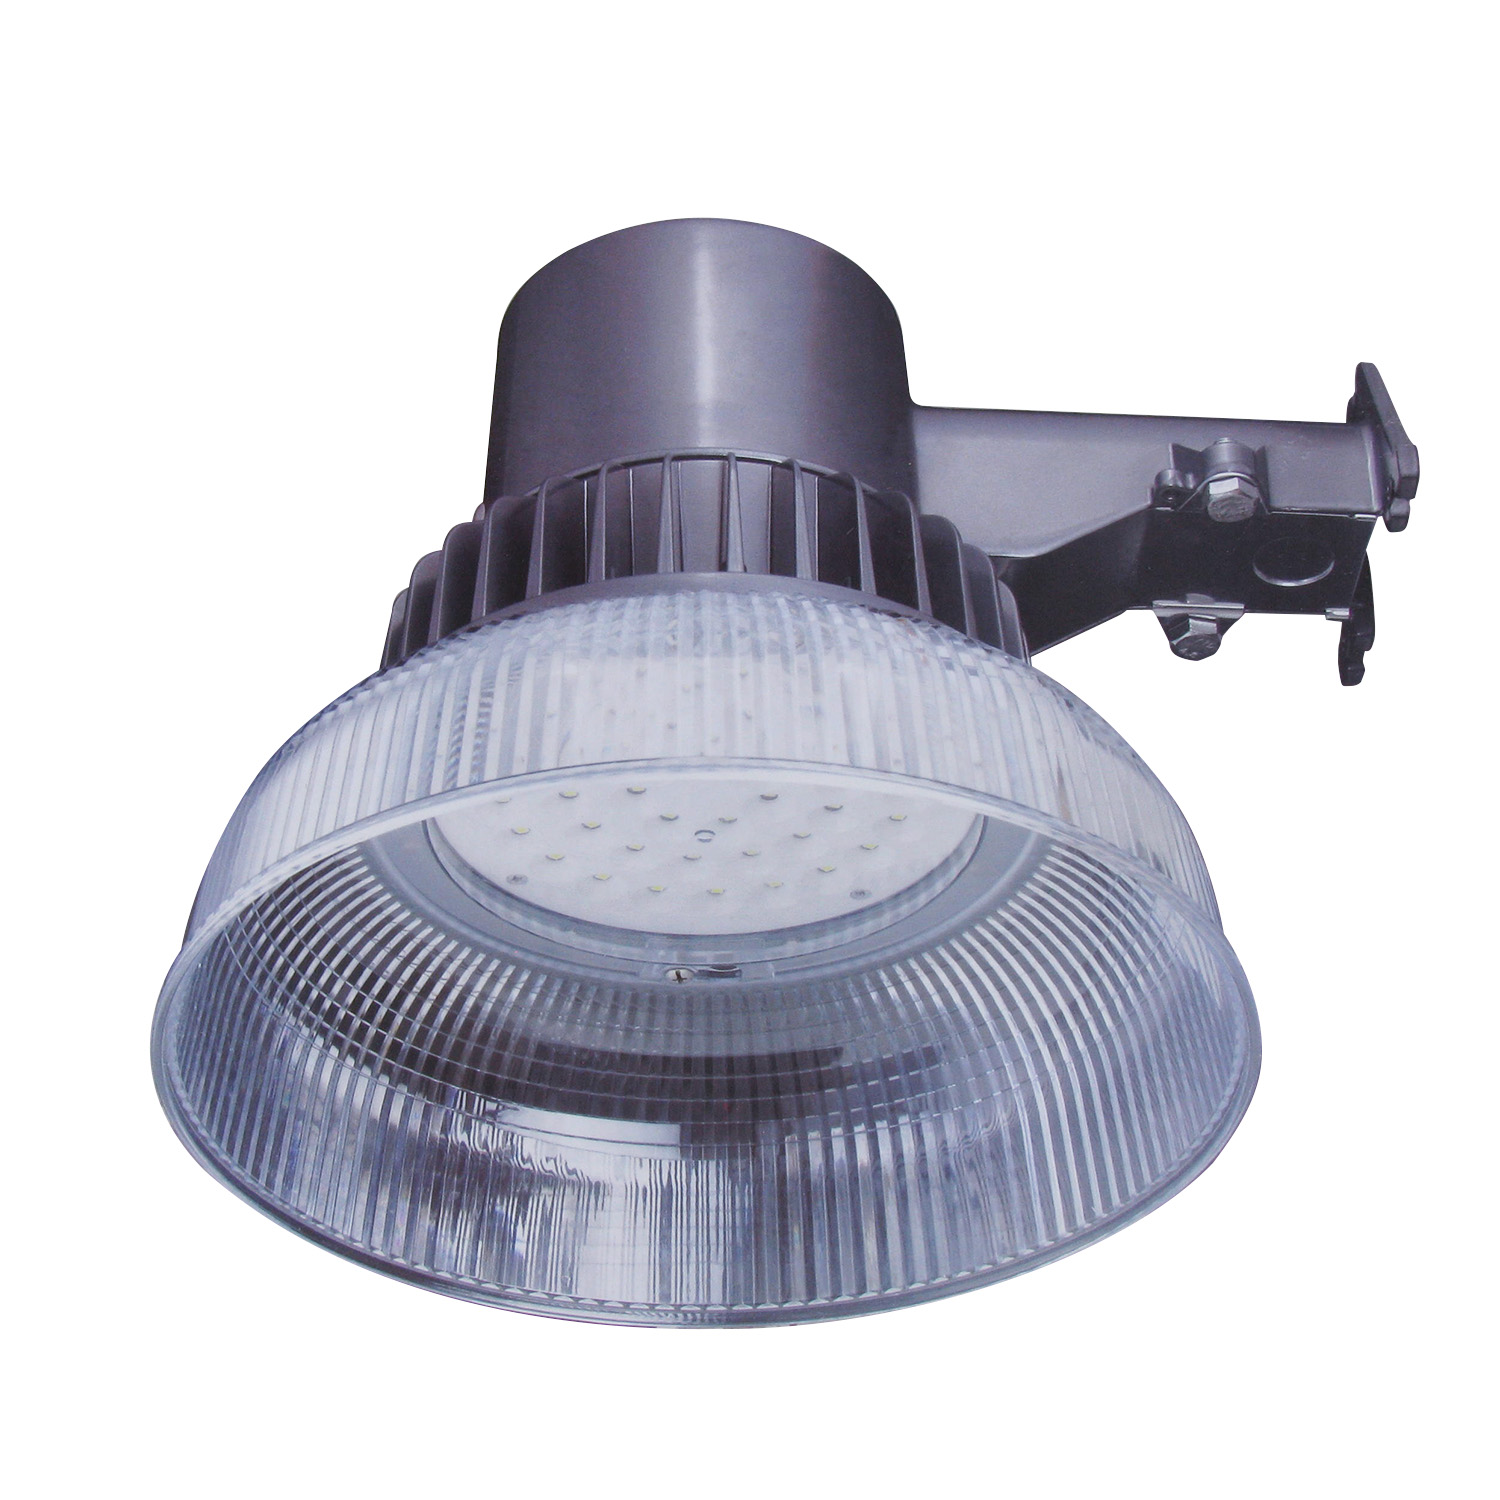 Honeywell Led Security Light In Aluminum Construction 4000 Lumens Sconce Lamp Wiring Diagram Ma0201 82